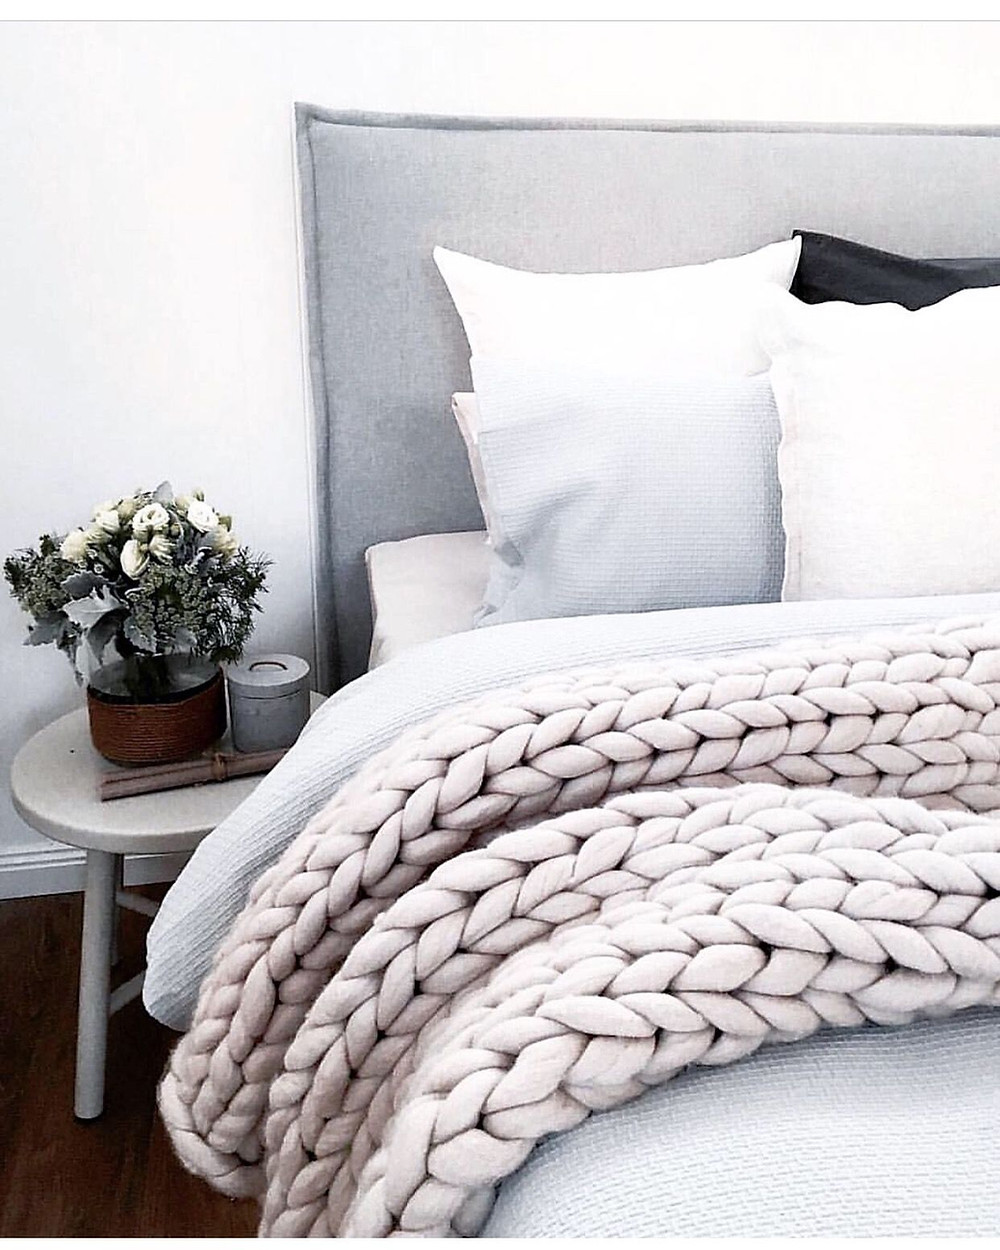 Find An Oversized Throw ~ Add a chunky knit throw to cozy-up a dull space.